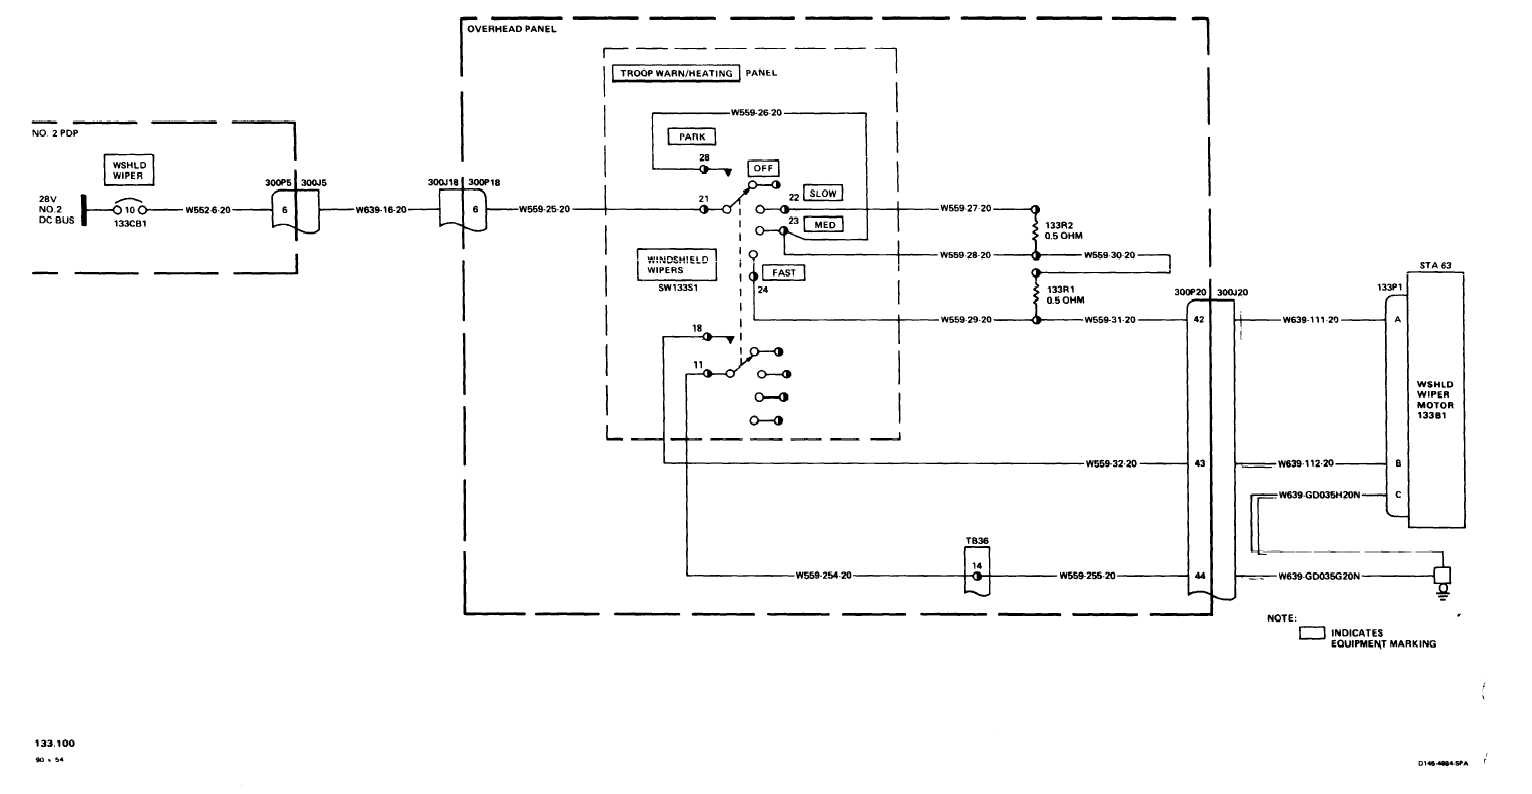 1965 mustang radio wiring diagram 1965 mustang rally pac